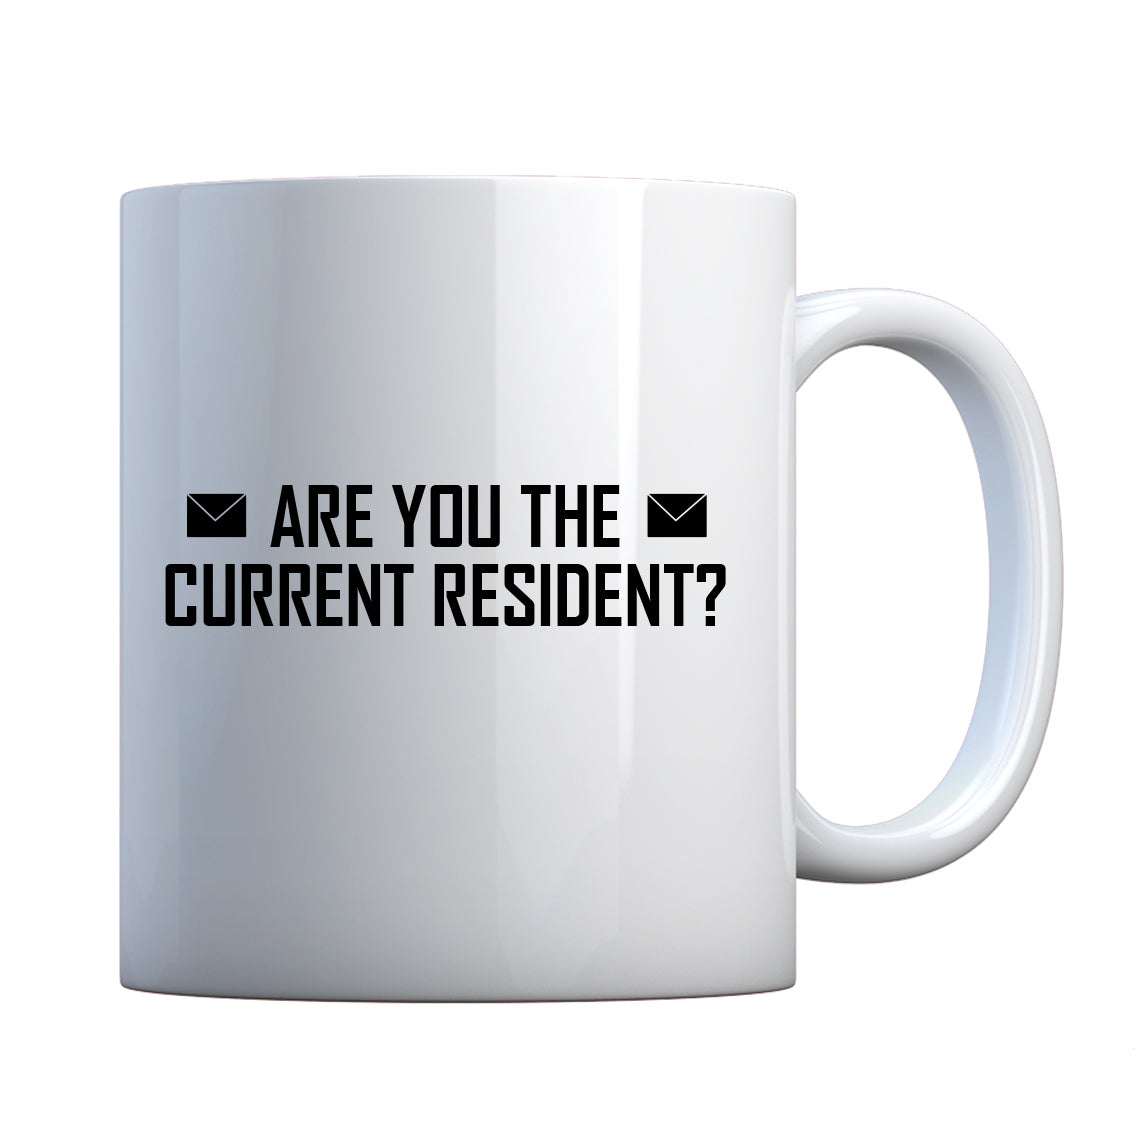 Mug Are you the Current Resident? Ceramic Gift Mug